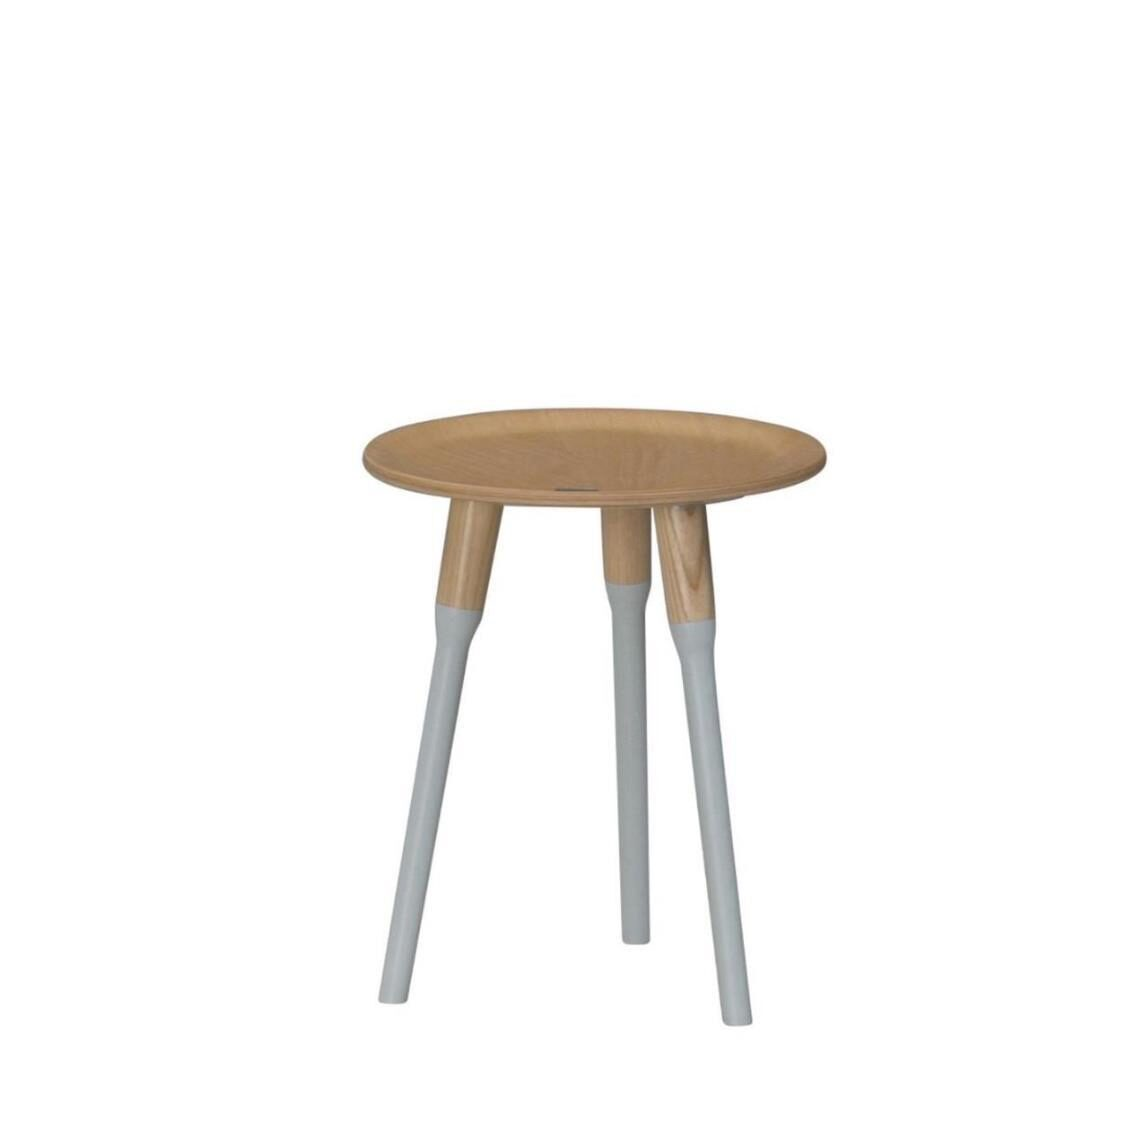 Miel Gallery Round Side Table Small BWBG Beech Wood Beige